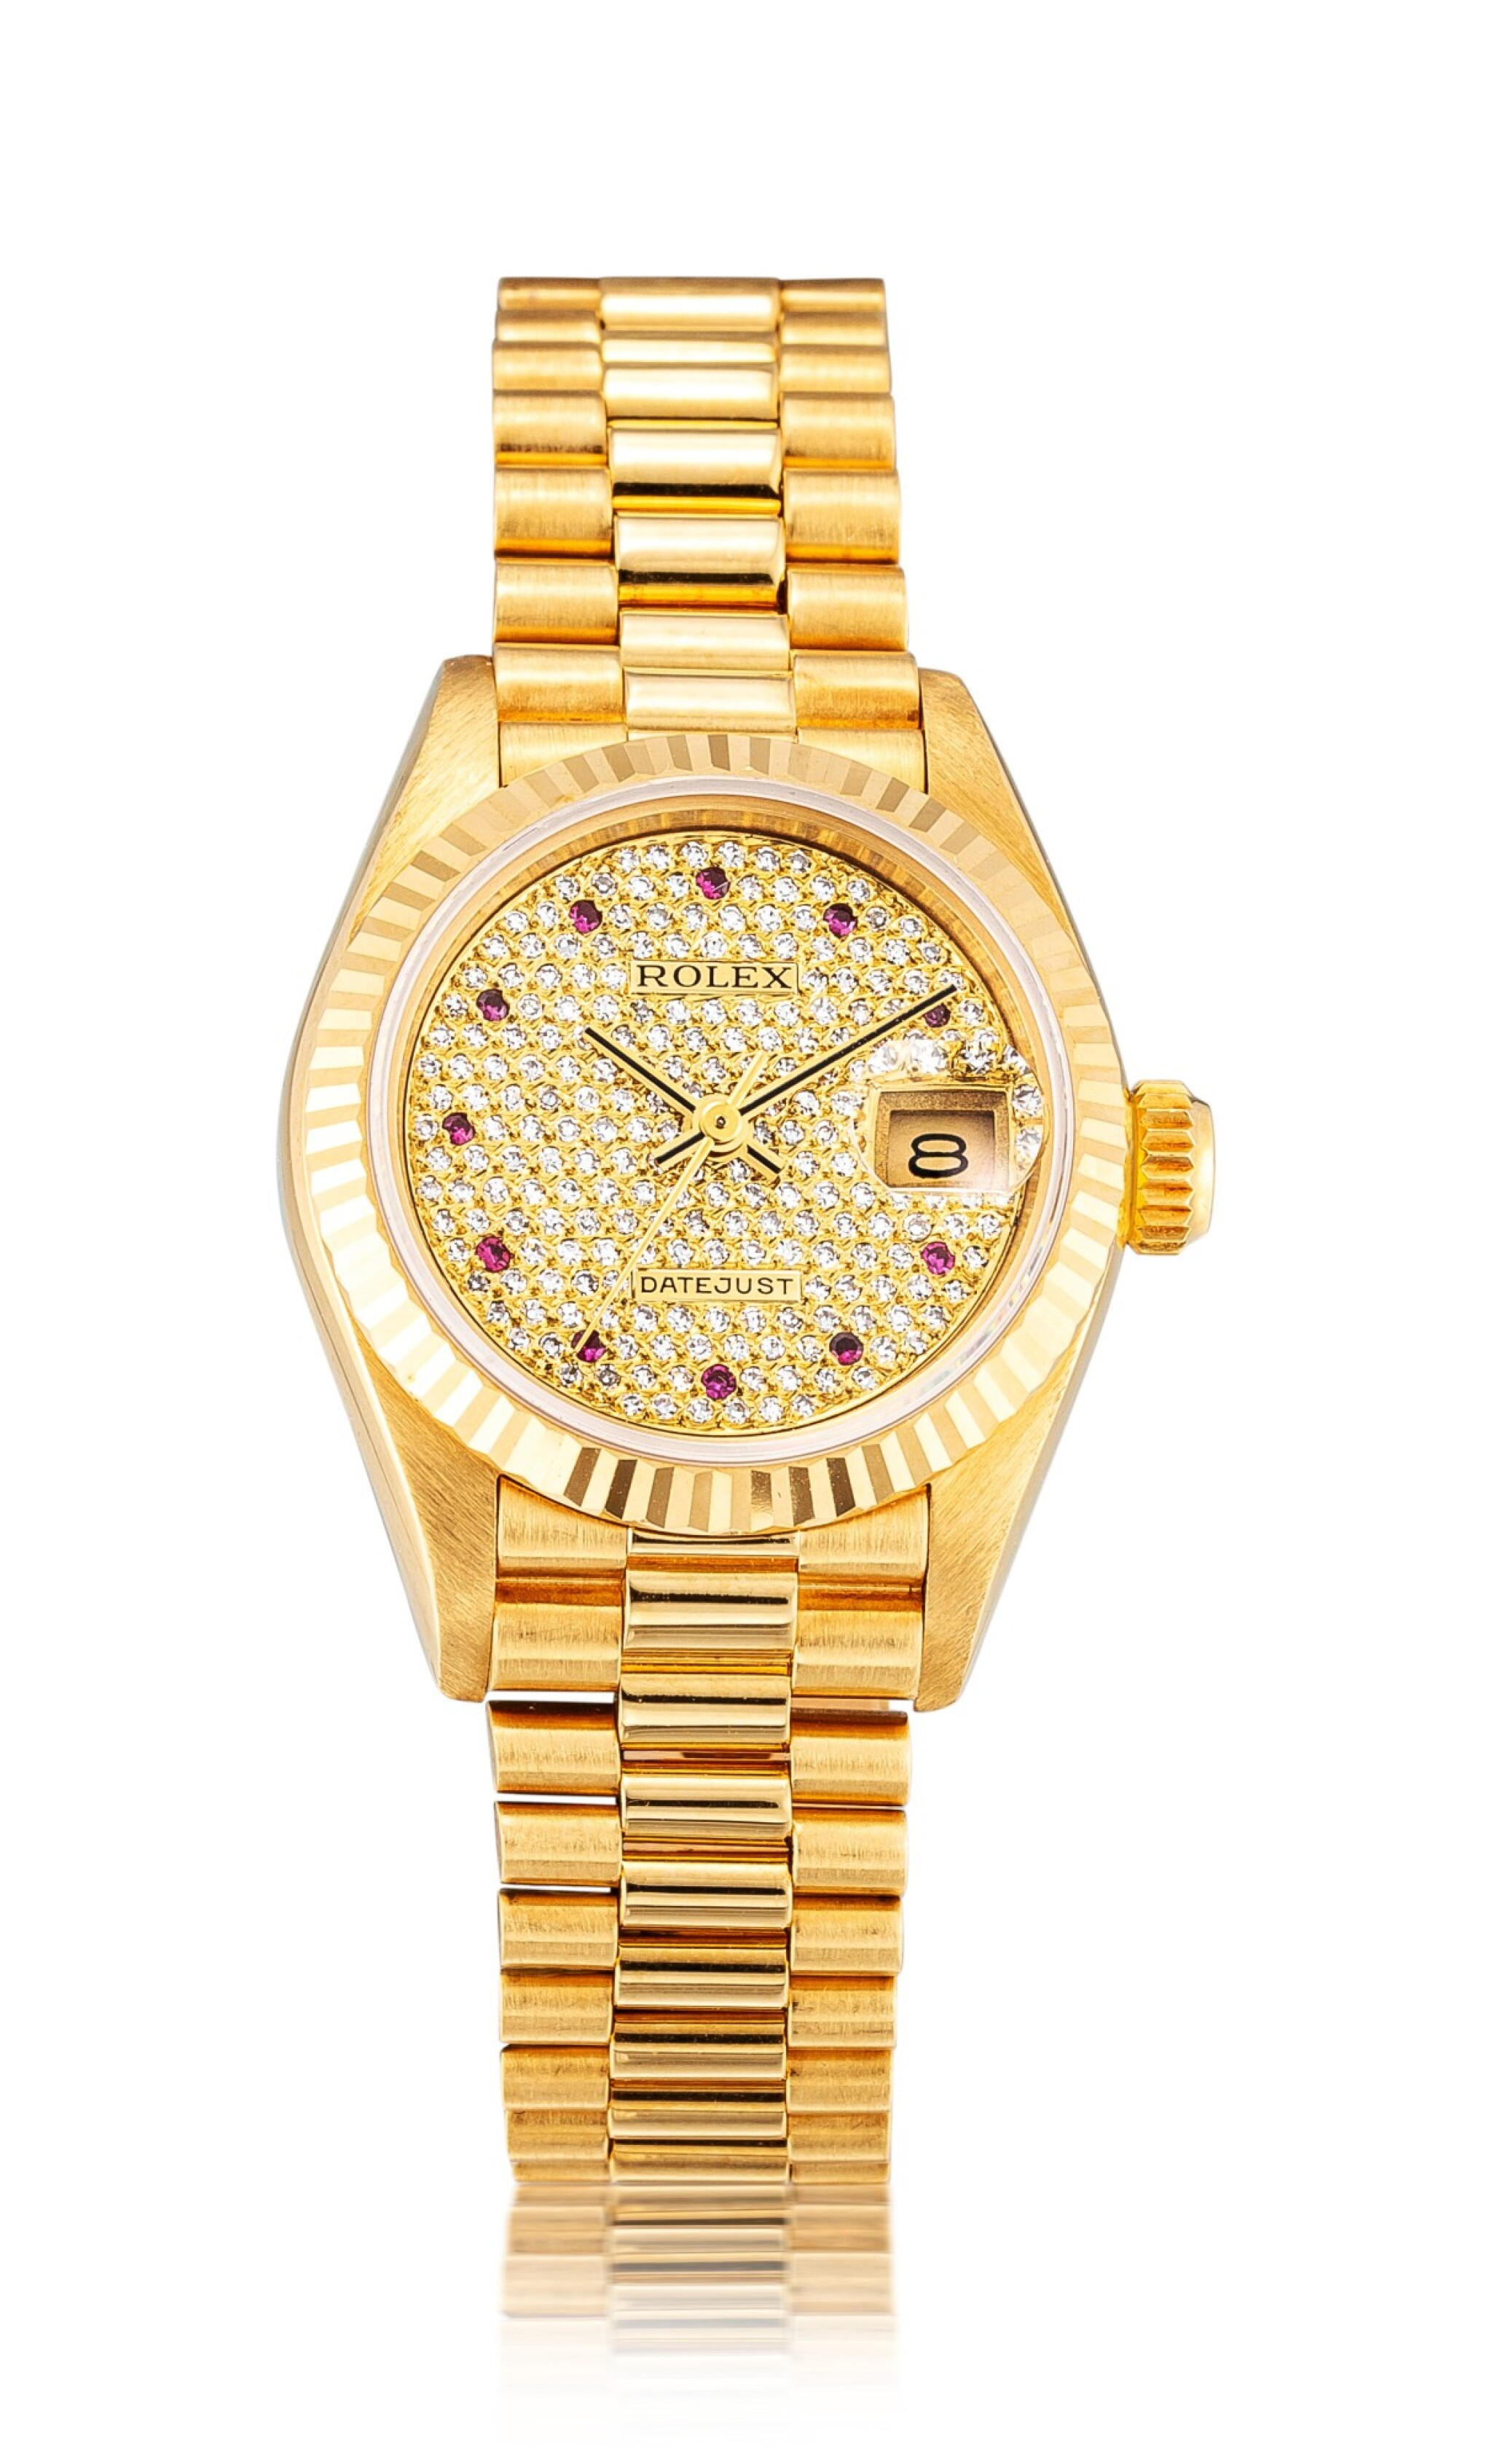 View full screen - View 1 of Lot 8135. ROLEX   DATEJUST, REFERENCE 69178   A YELLOW GOLD, DIAMOND AND RUBY-SET WRISTWATCH WITH DATE AND BRACELET, CIRCA 1987   勞力士   Datejust 型號69178   黃金鑲鑽石及紅寶石鏈帶腕錶,備日期顯示,約1987年製.